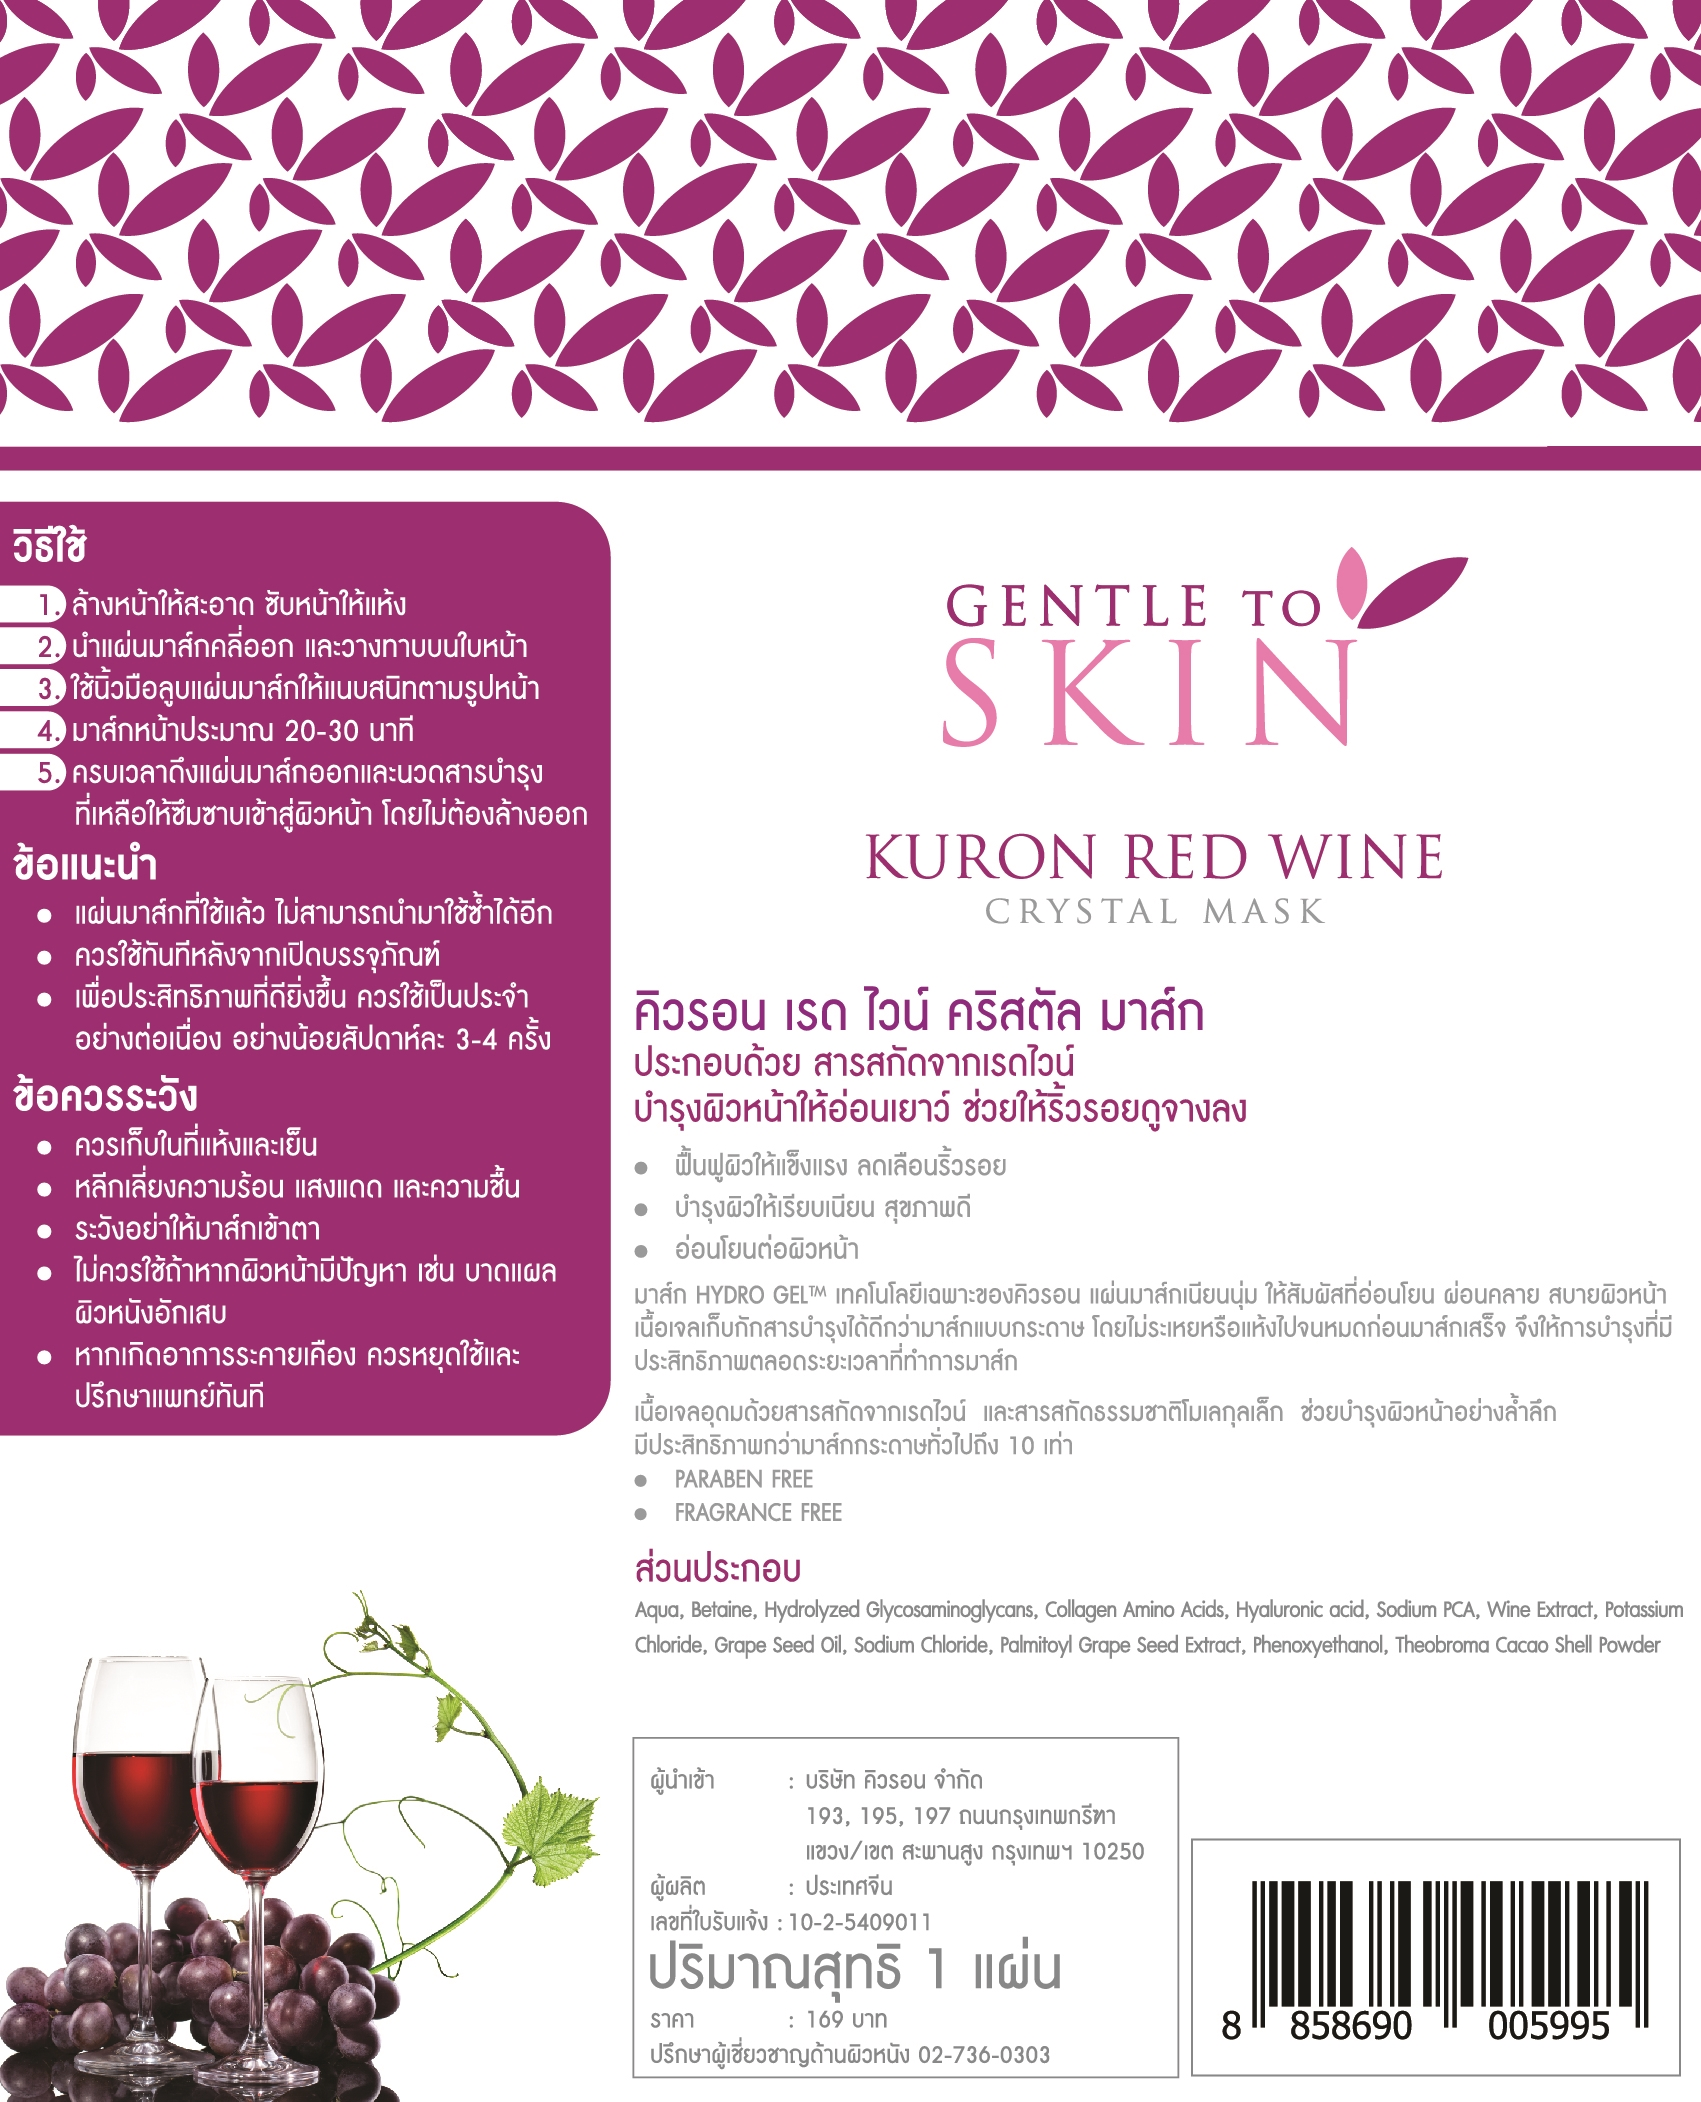 KURON RED WINE CRYTAL MASK Hydro Gel